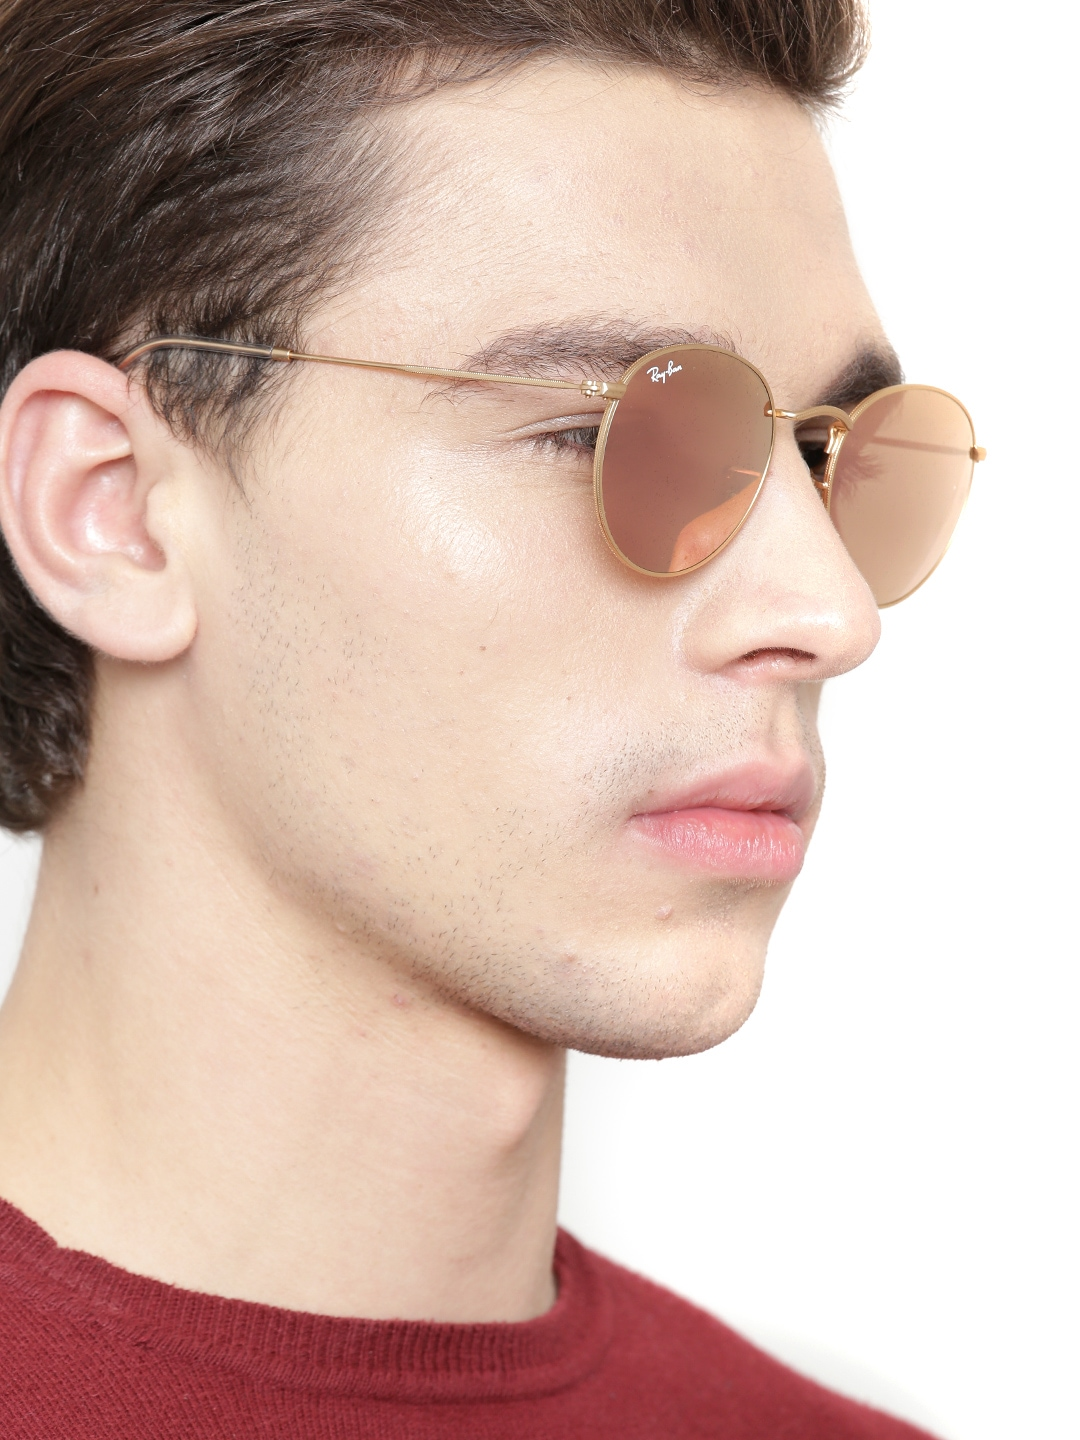 38290ed1b77 Men Ray Ban Sunglasses Round « Heritage Malta